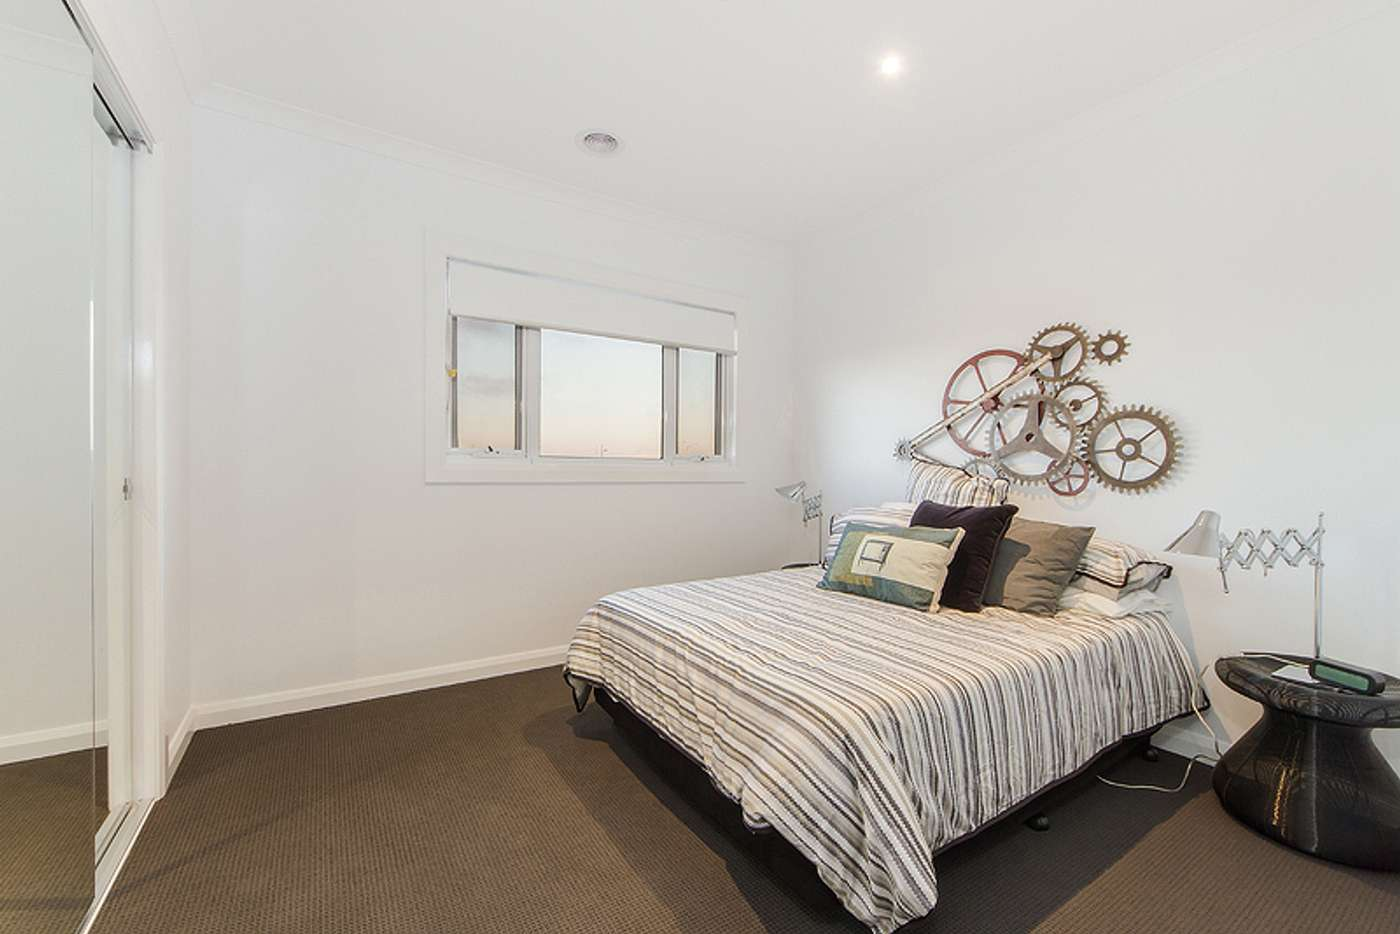 Sixth view of Homely house listing, LOT 31522 Hoover Street, Craigieburn VIC 3064